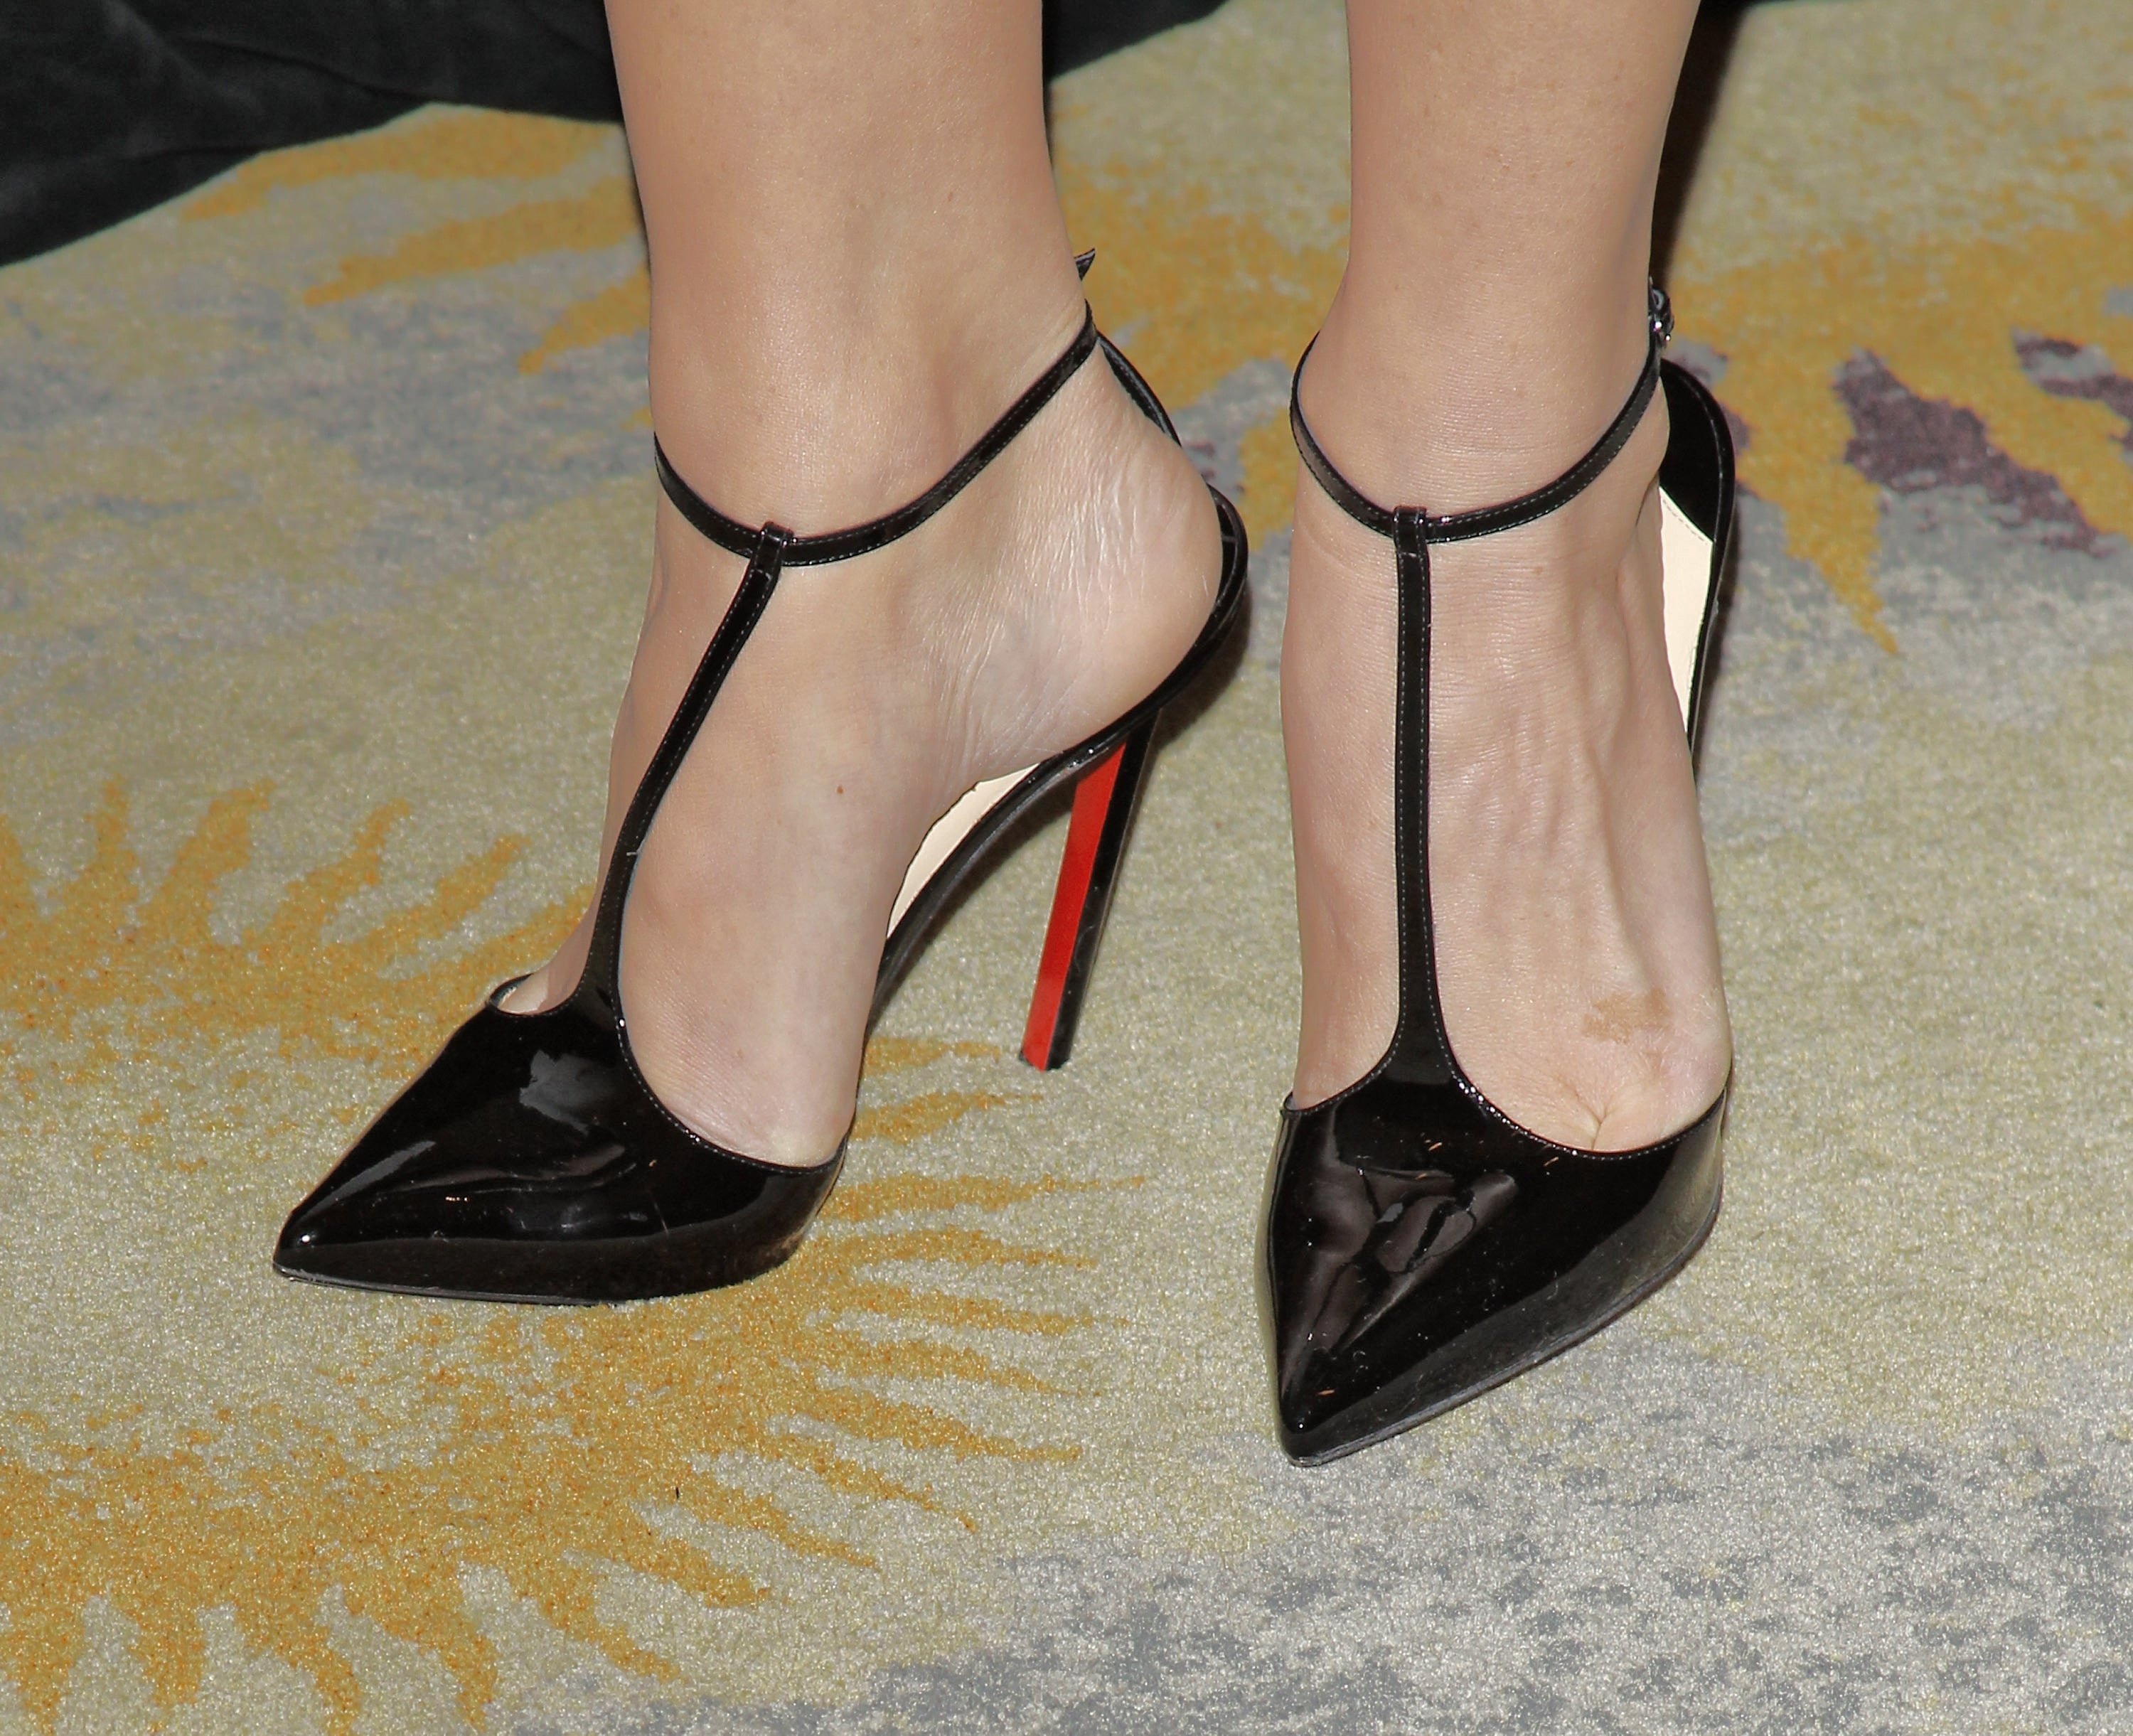 Olivia-Munn-Sexy Feet in high heels picture